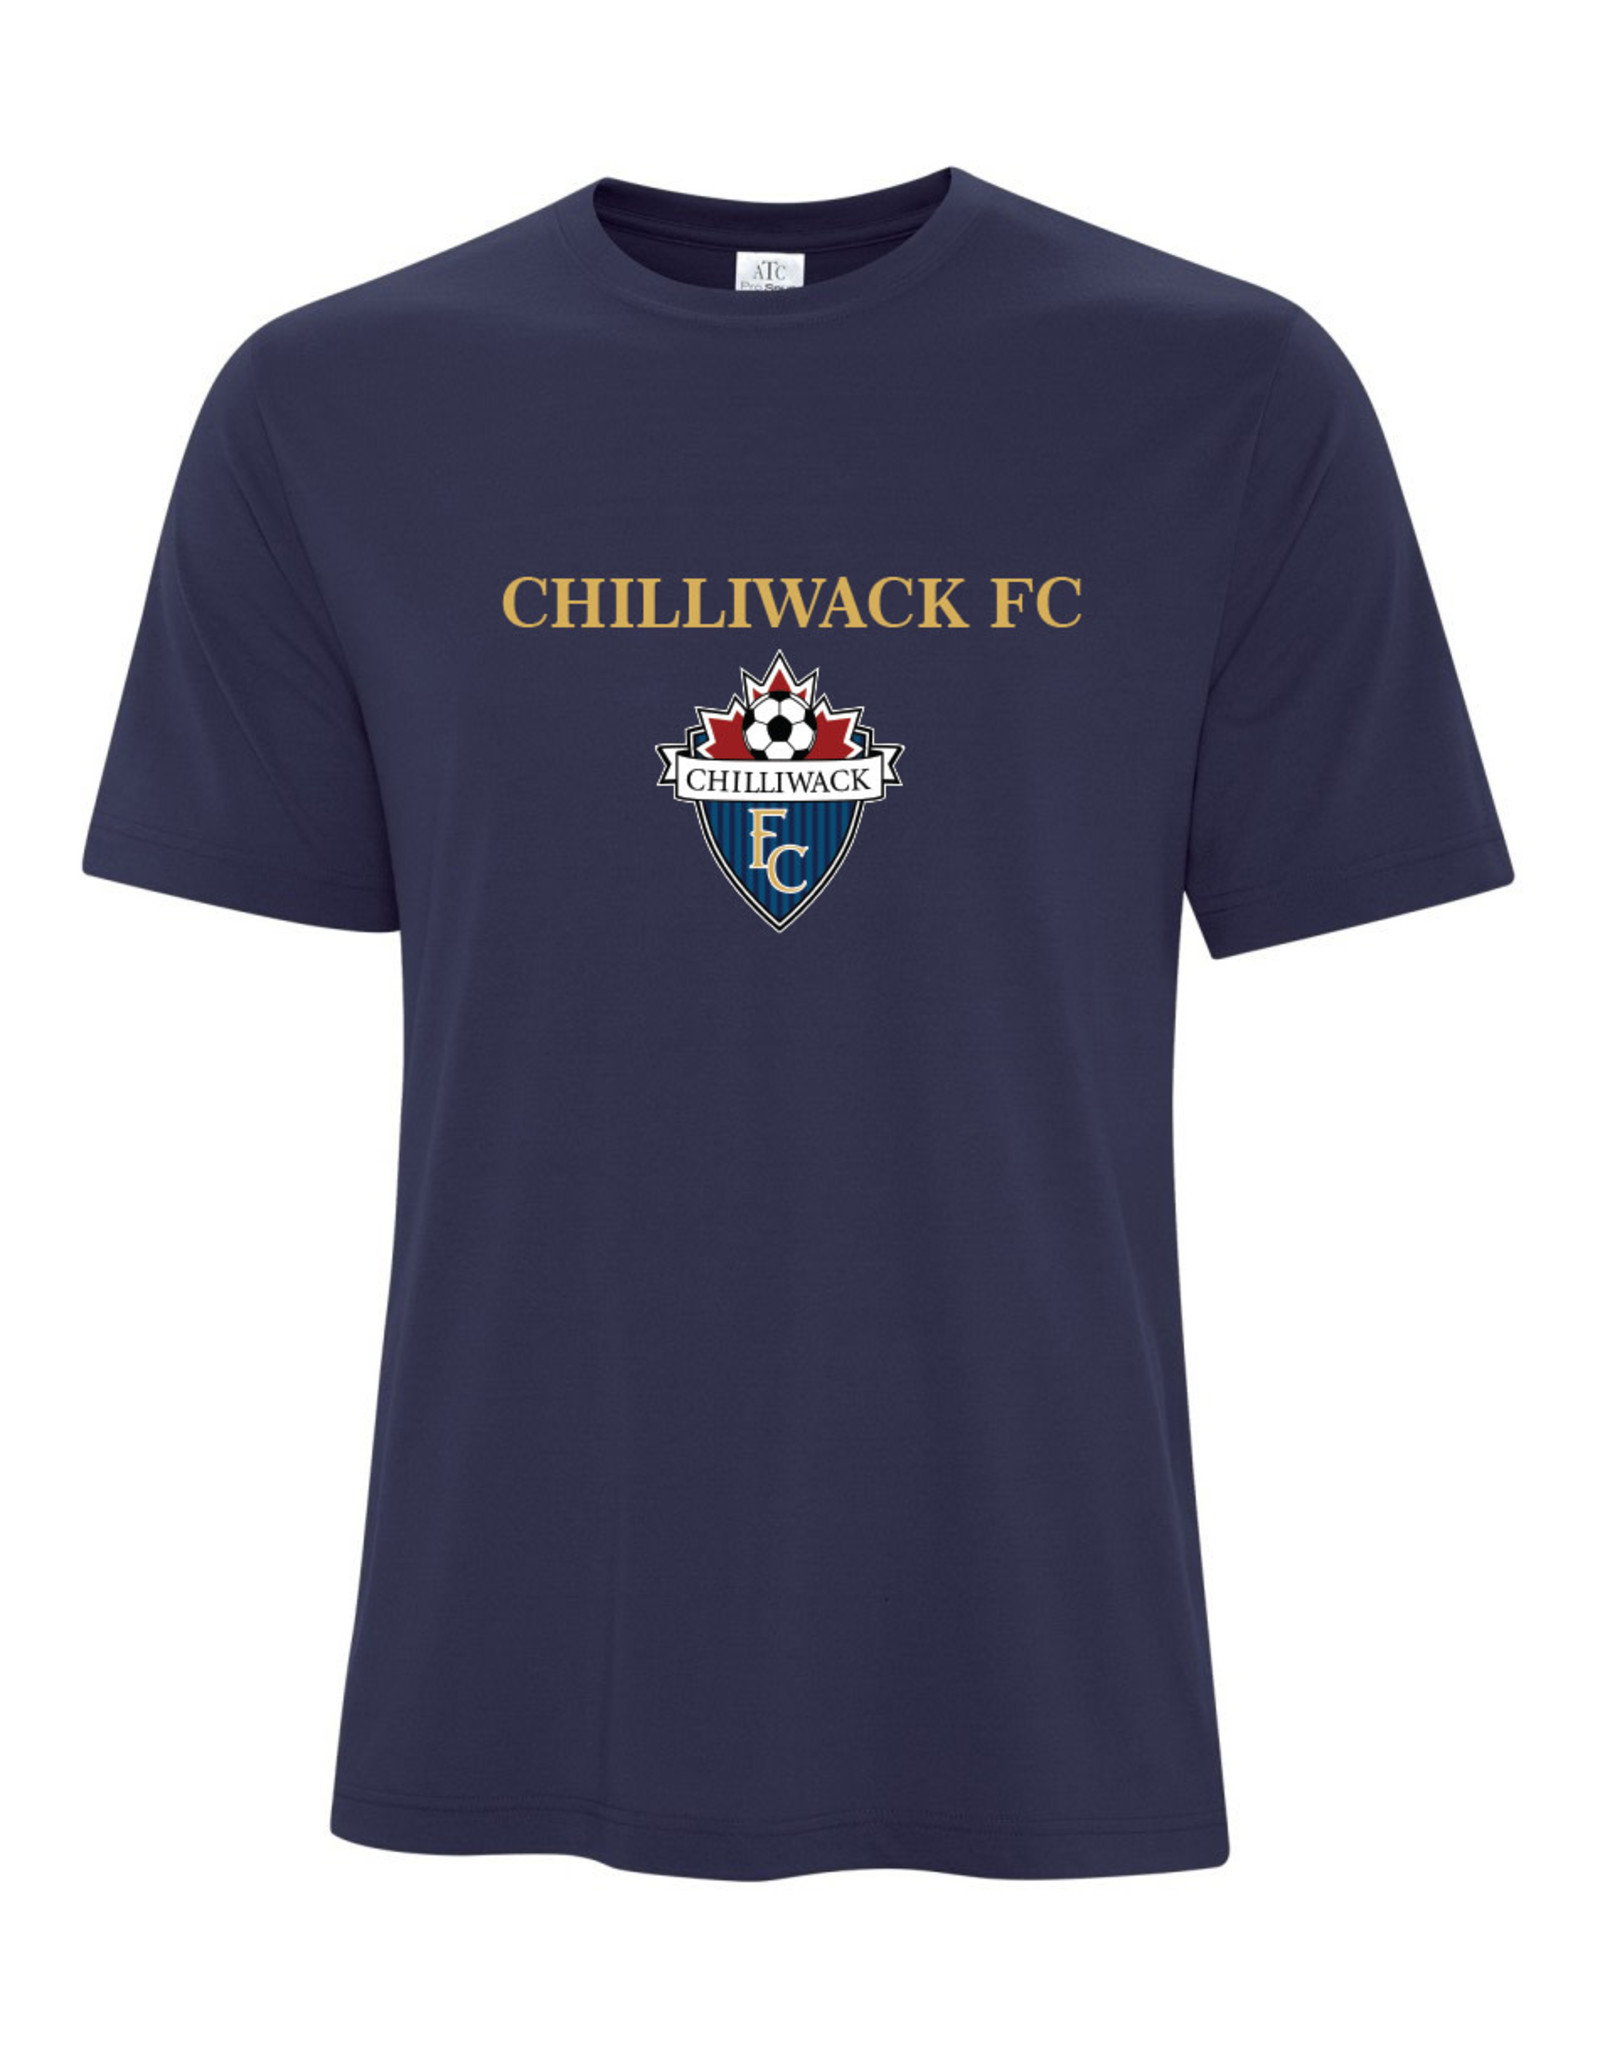 The Authentic T-Shirt Company CHILLIWACK FC CLASSIC T